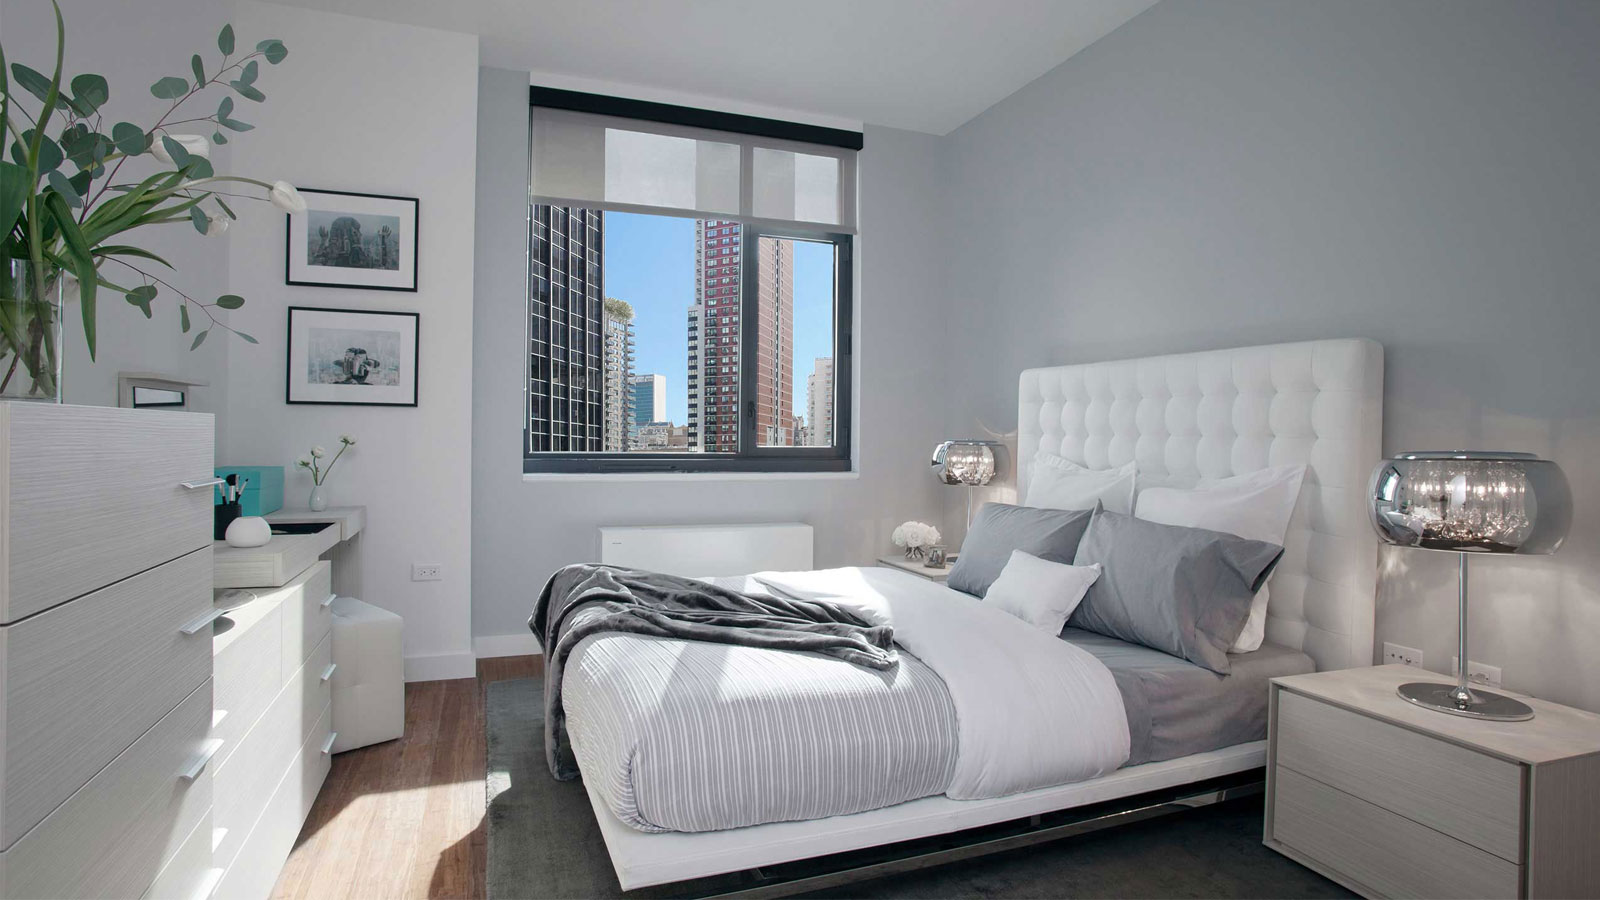 Frontier, 200 East 39th Street